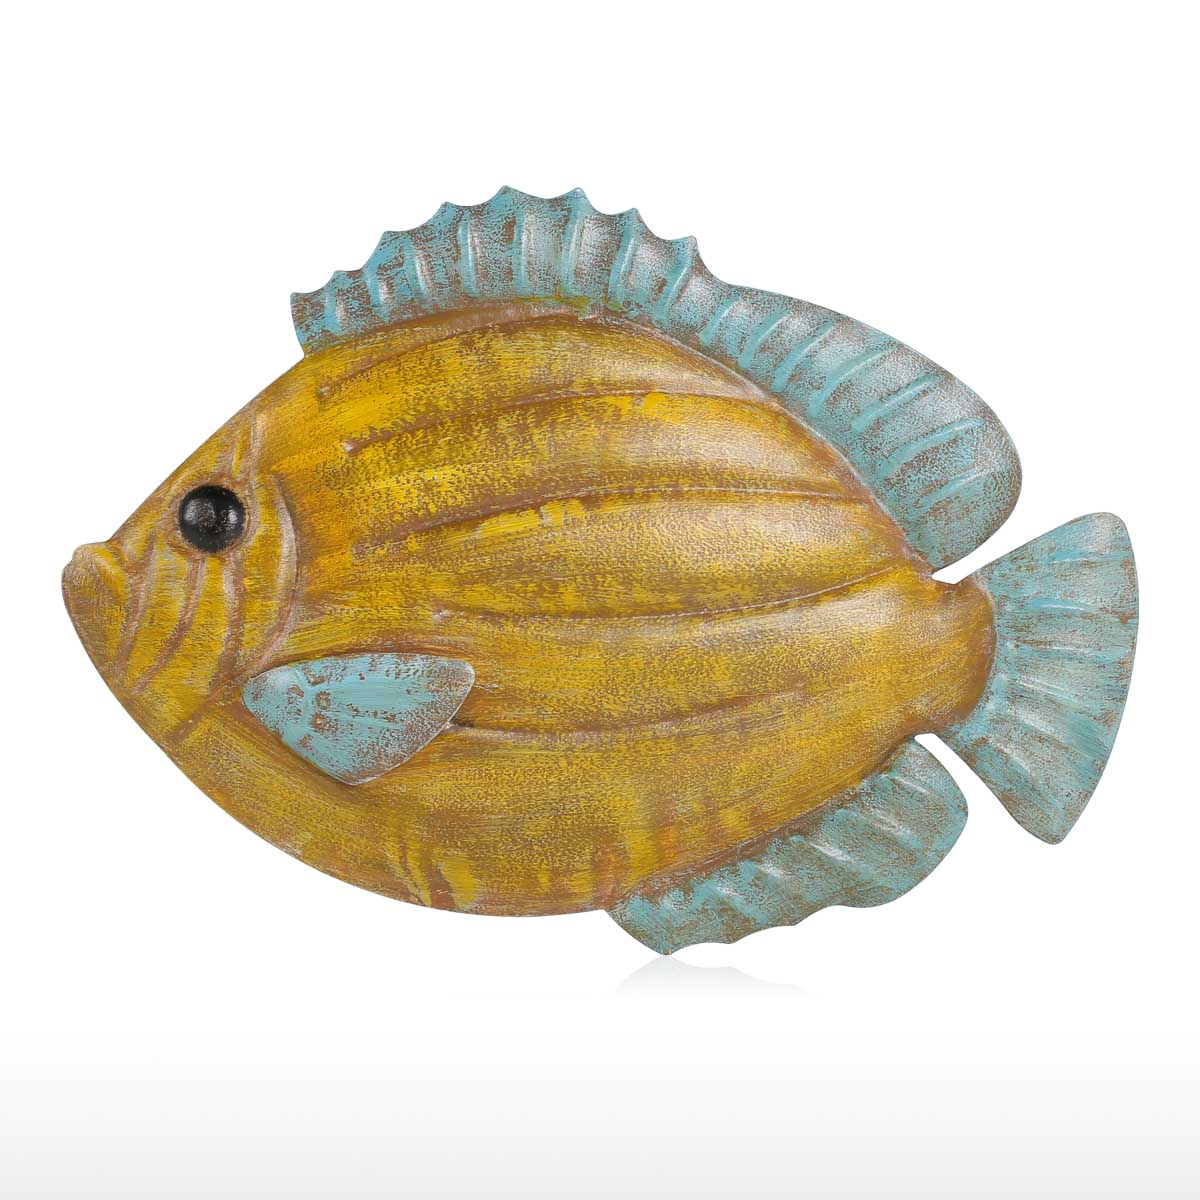 Tooarts Muticolored Fish Wall Hanging Iron Wall Decor Creative ...